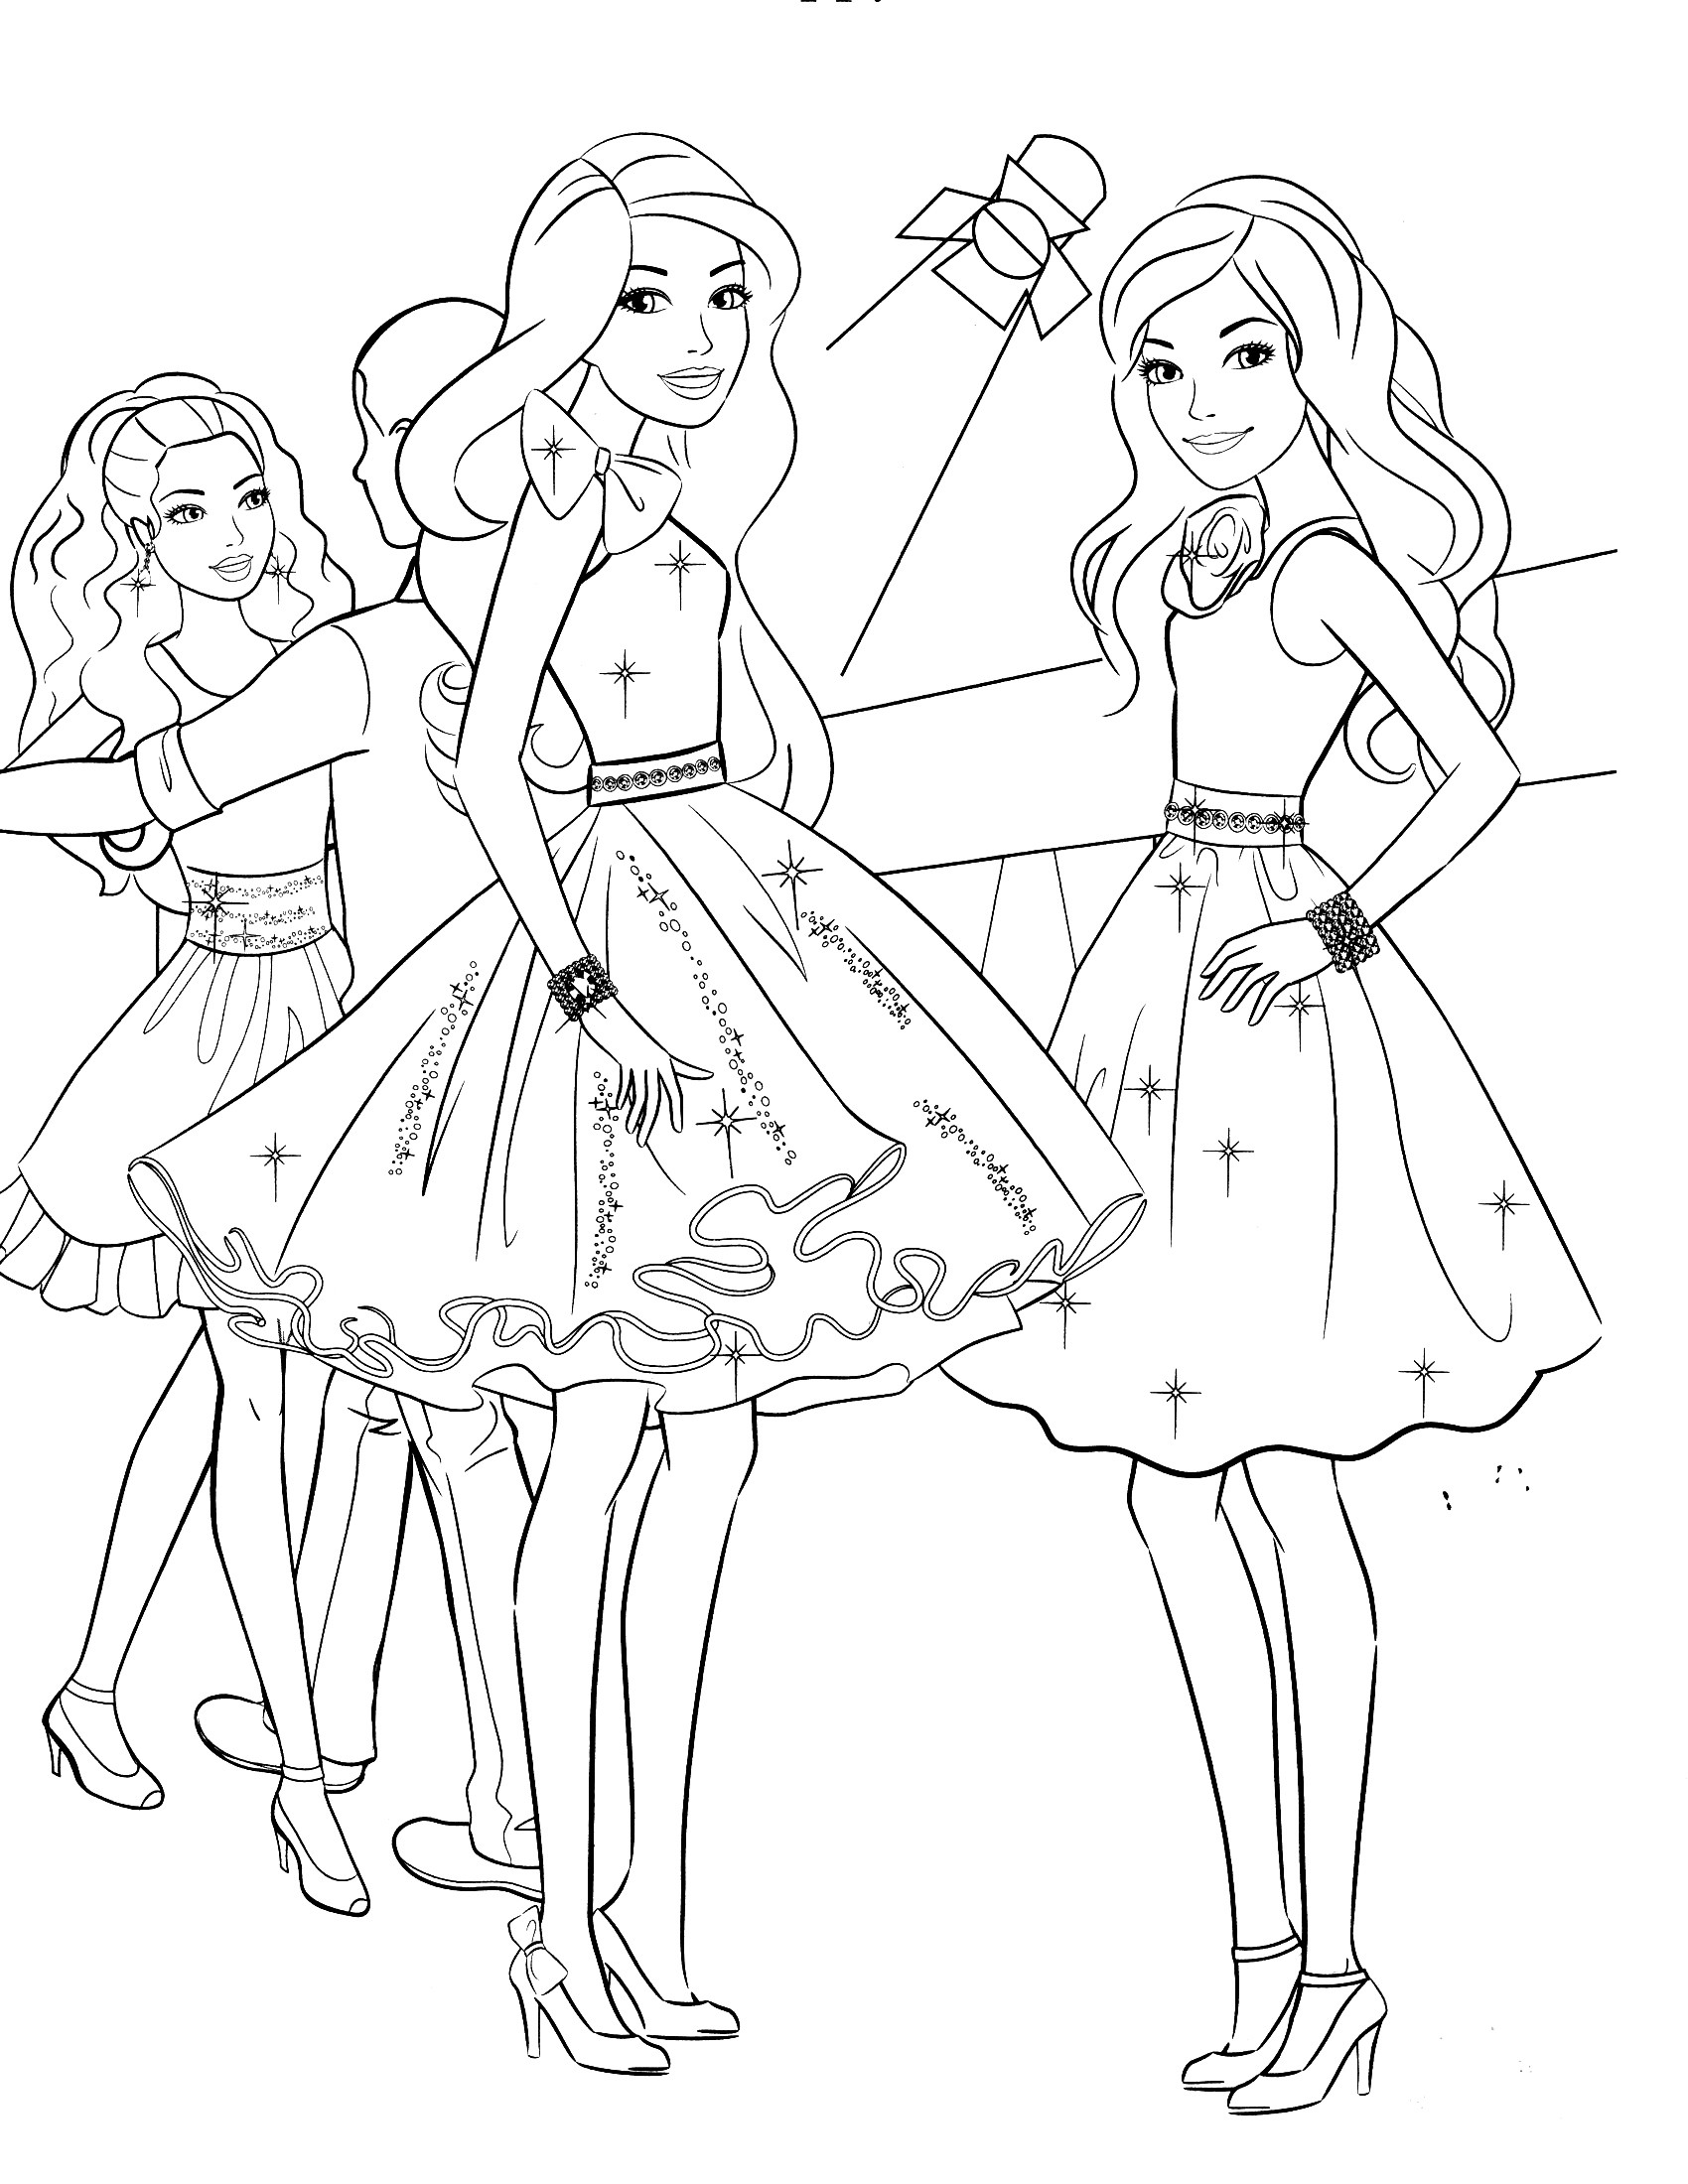 Best ideas about Coloring Pages For Girls Princess High . Save or Pin Coloriage Barbie au bal à imprimer Now.